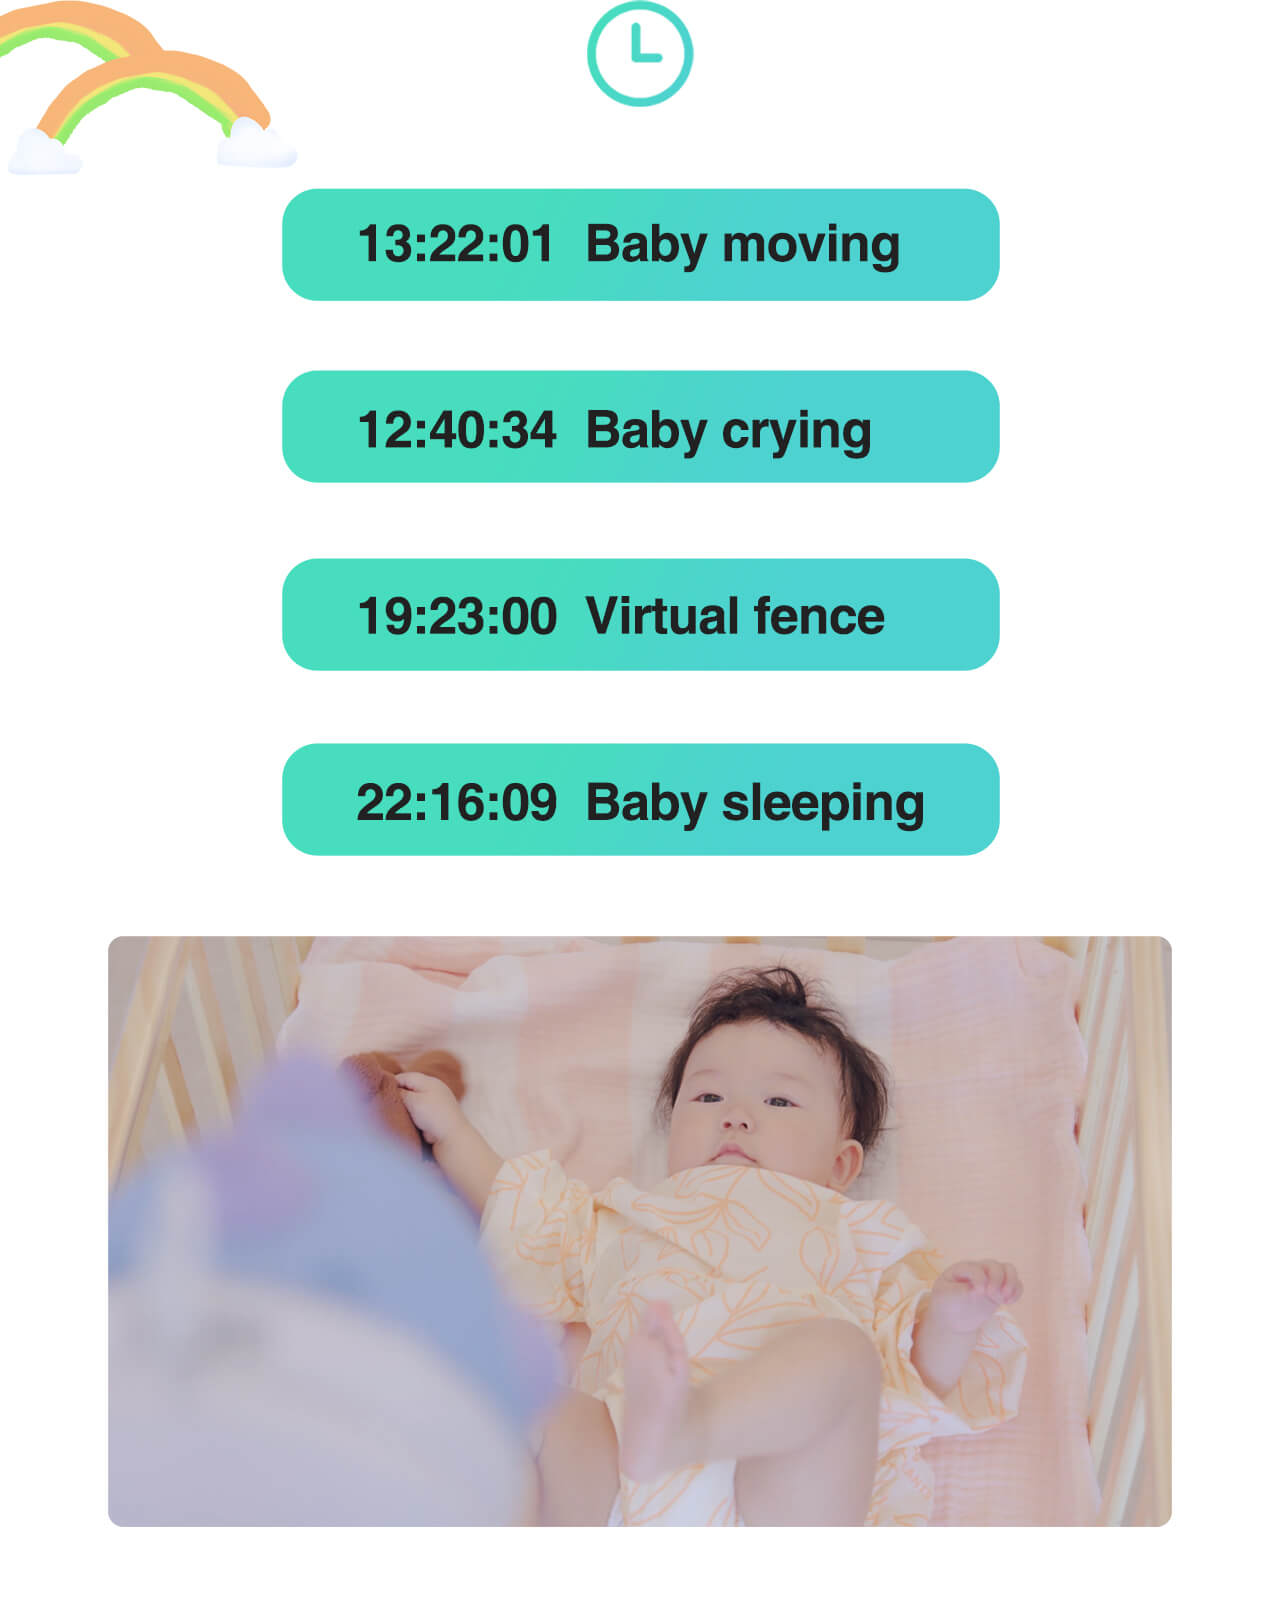 SimCam AI baby monitor keeps 24/7 recording